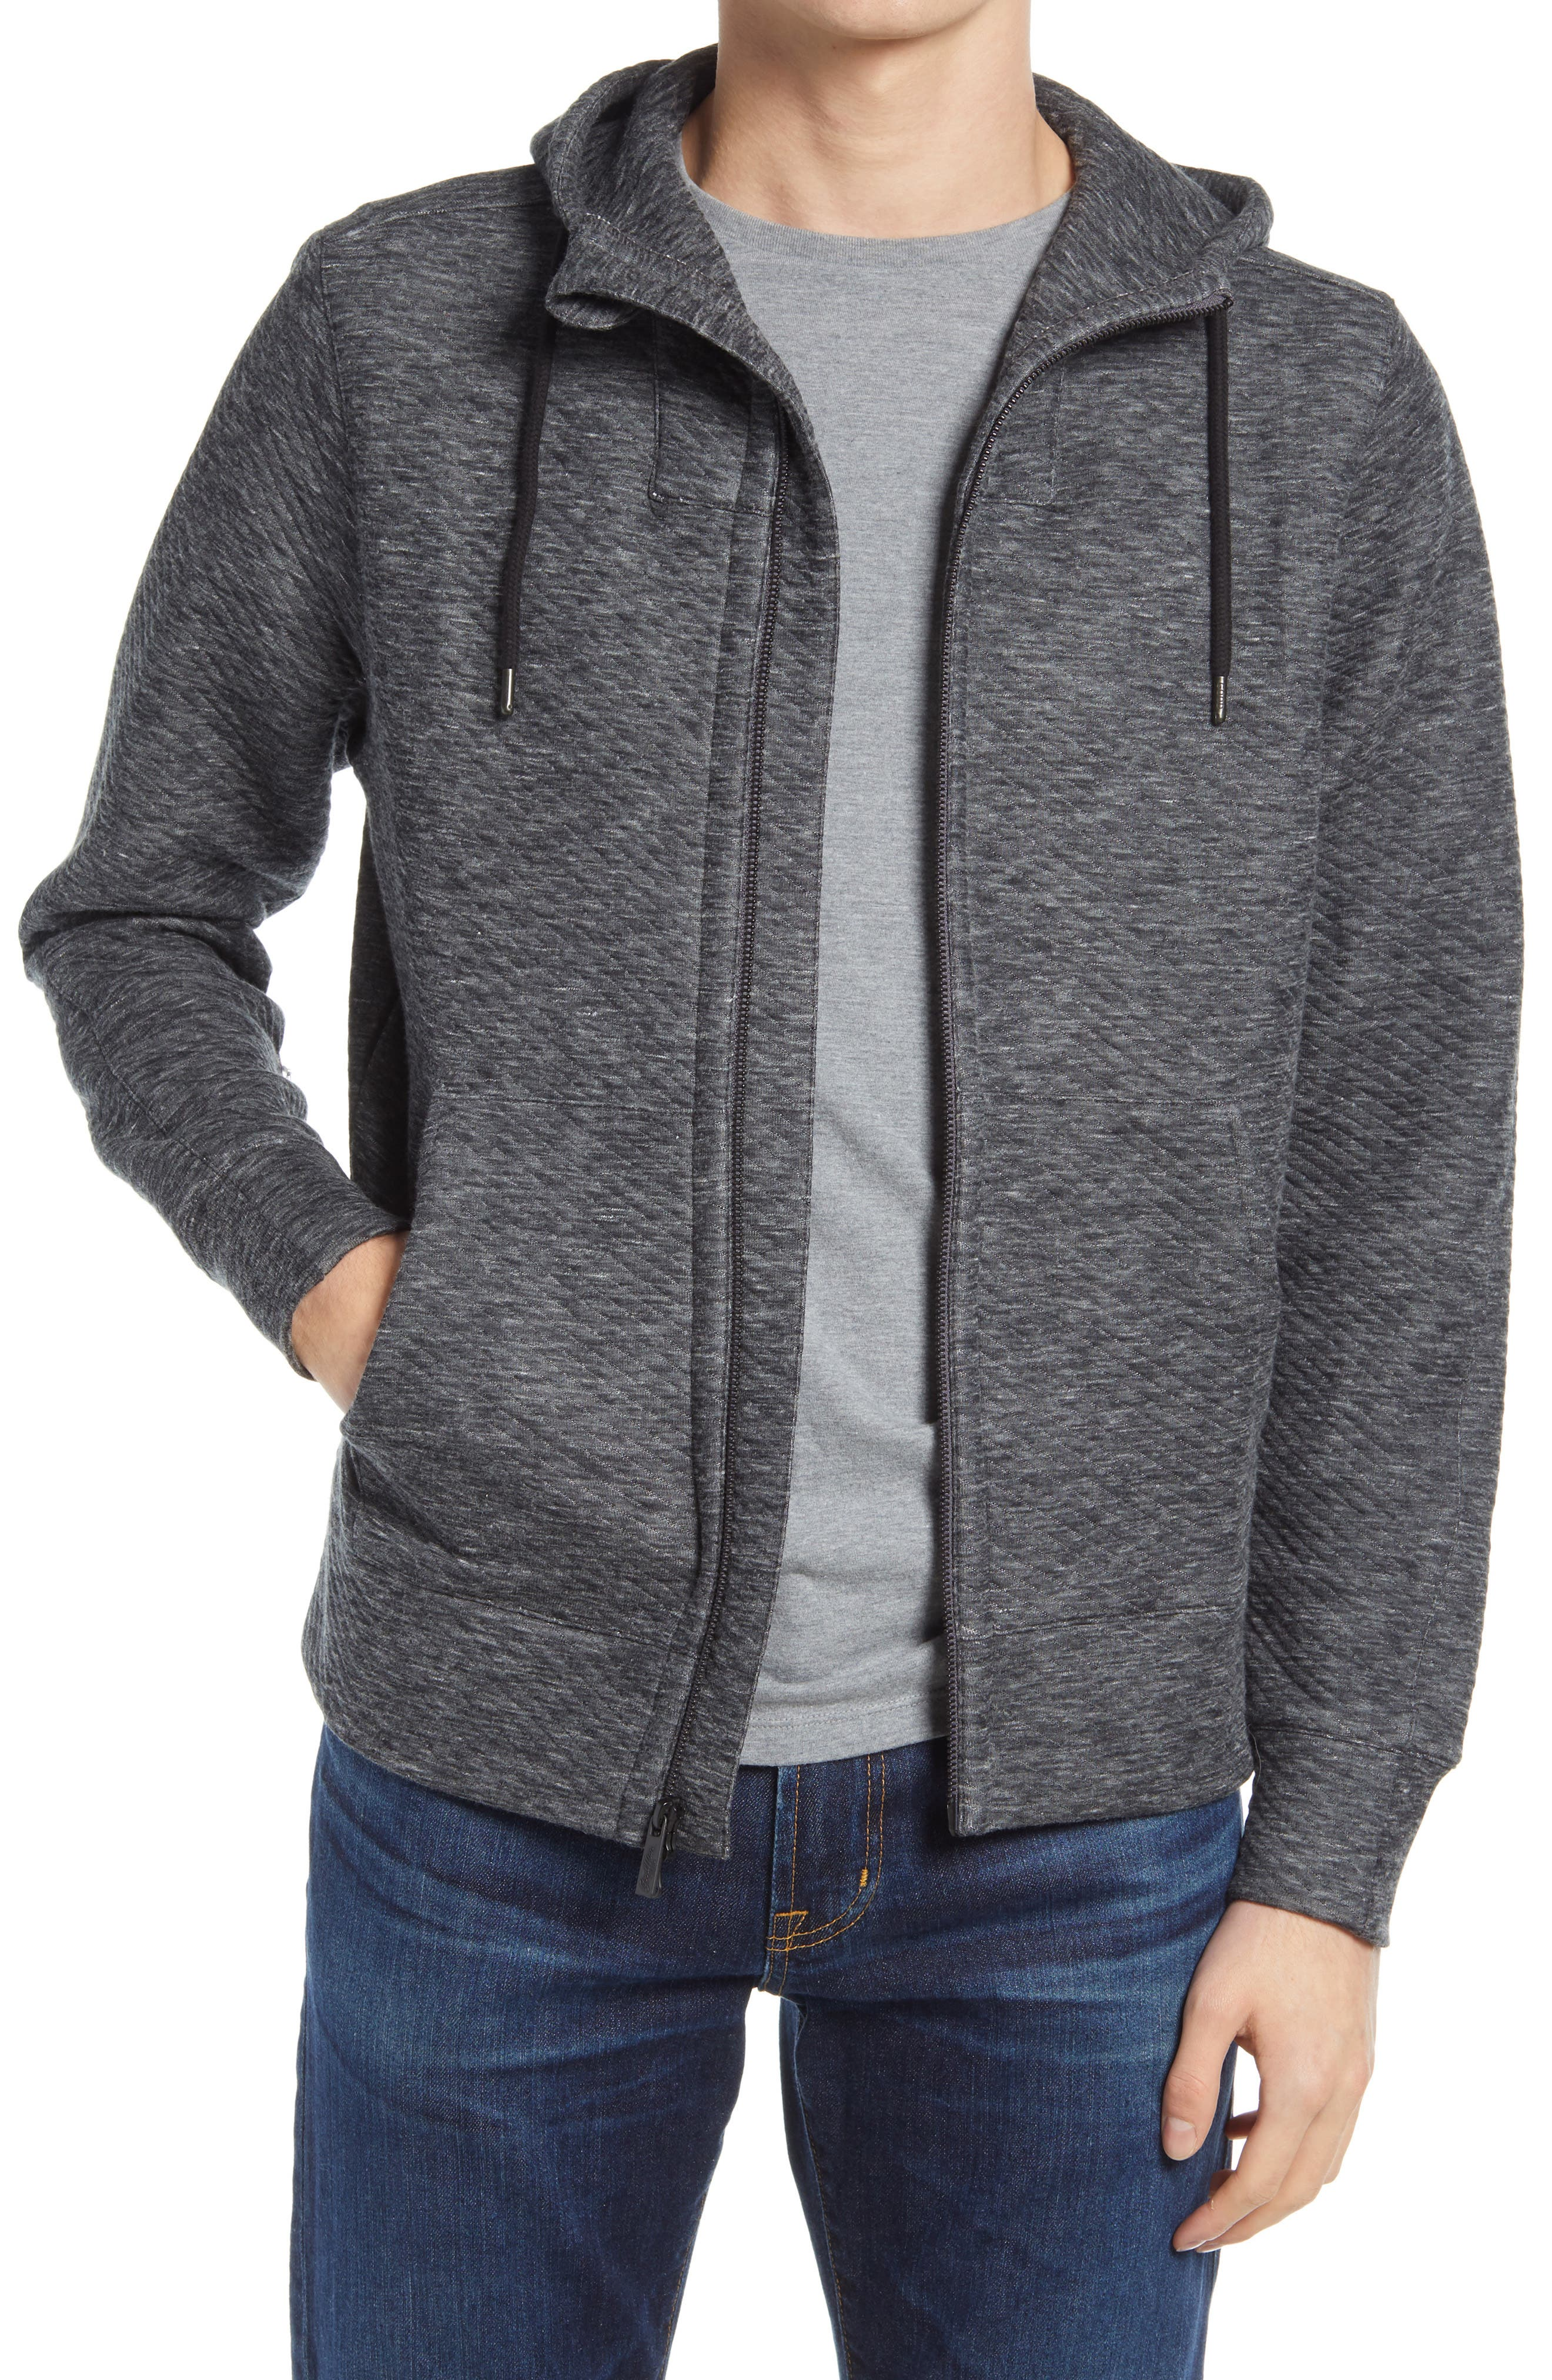 Subtle diagonal ribbing brings sporty angles to a zip-up cut from a soft cotton-blend French terry with a layered hood and front pockets for added coverage in the cold. Style Name: Good Man Brand Pro Slim Fit Zip Hoodie. Style Number: 5906788. Available in stores.